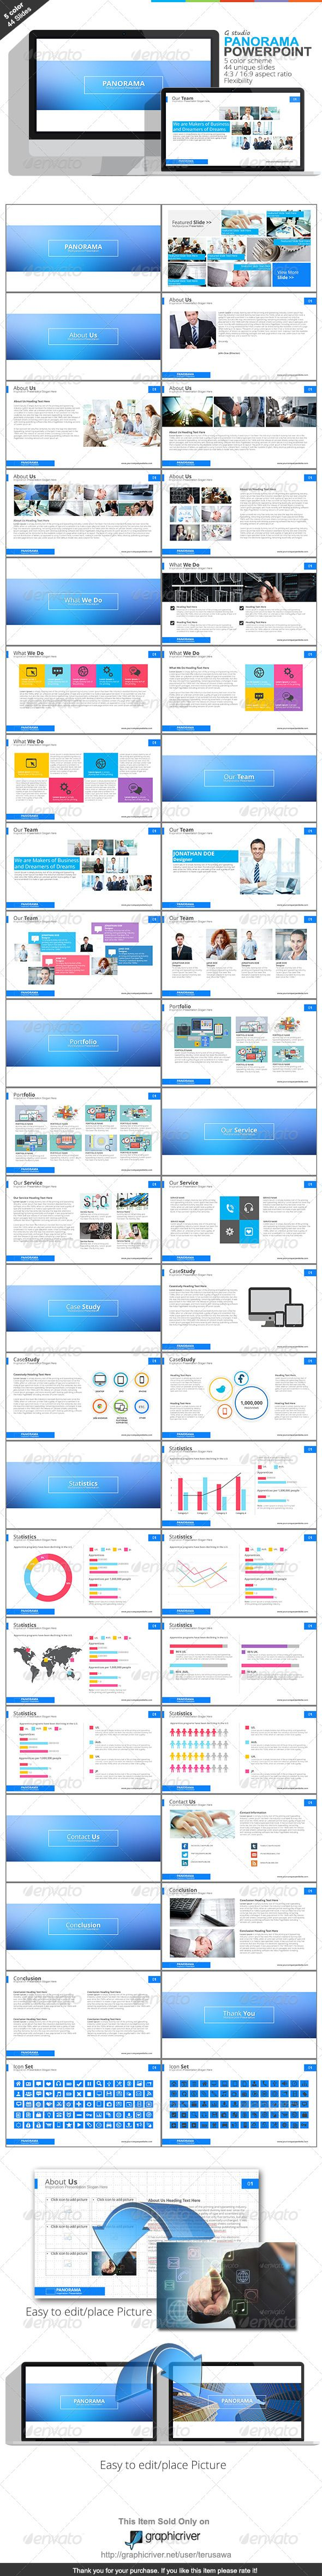 Gstudio Panorama Powerpoint Template - Business Powerpoint Templates